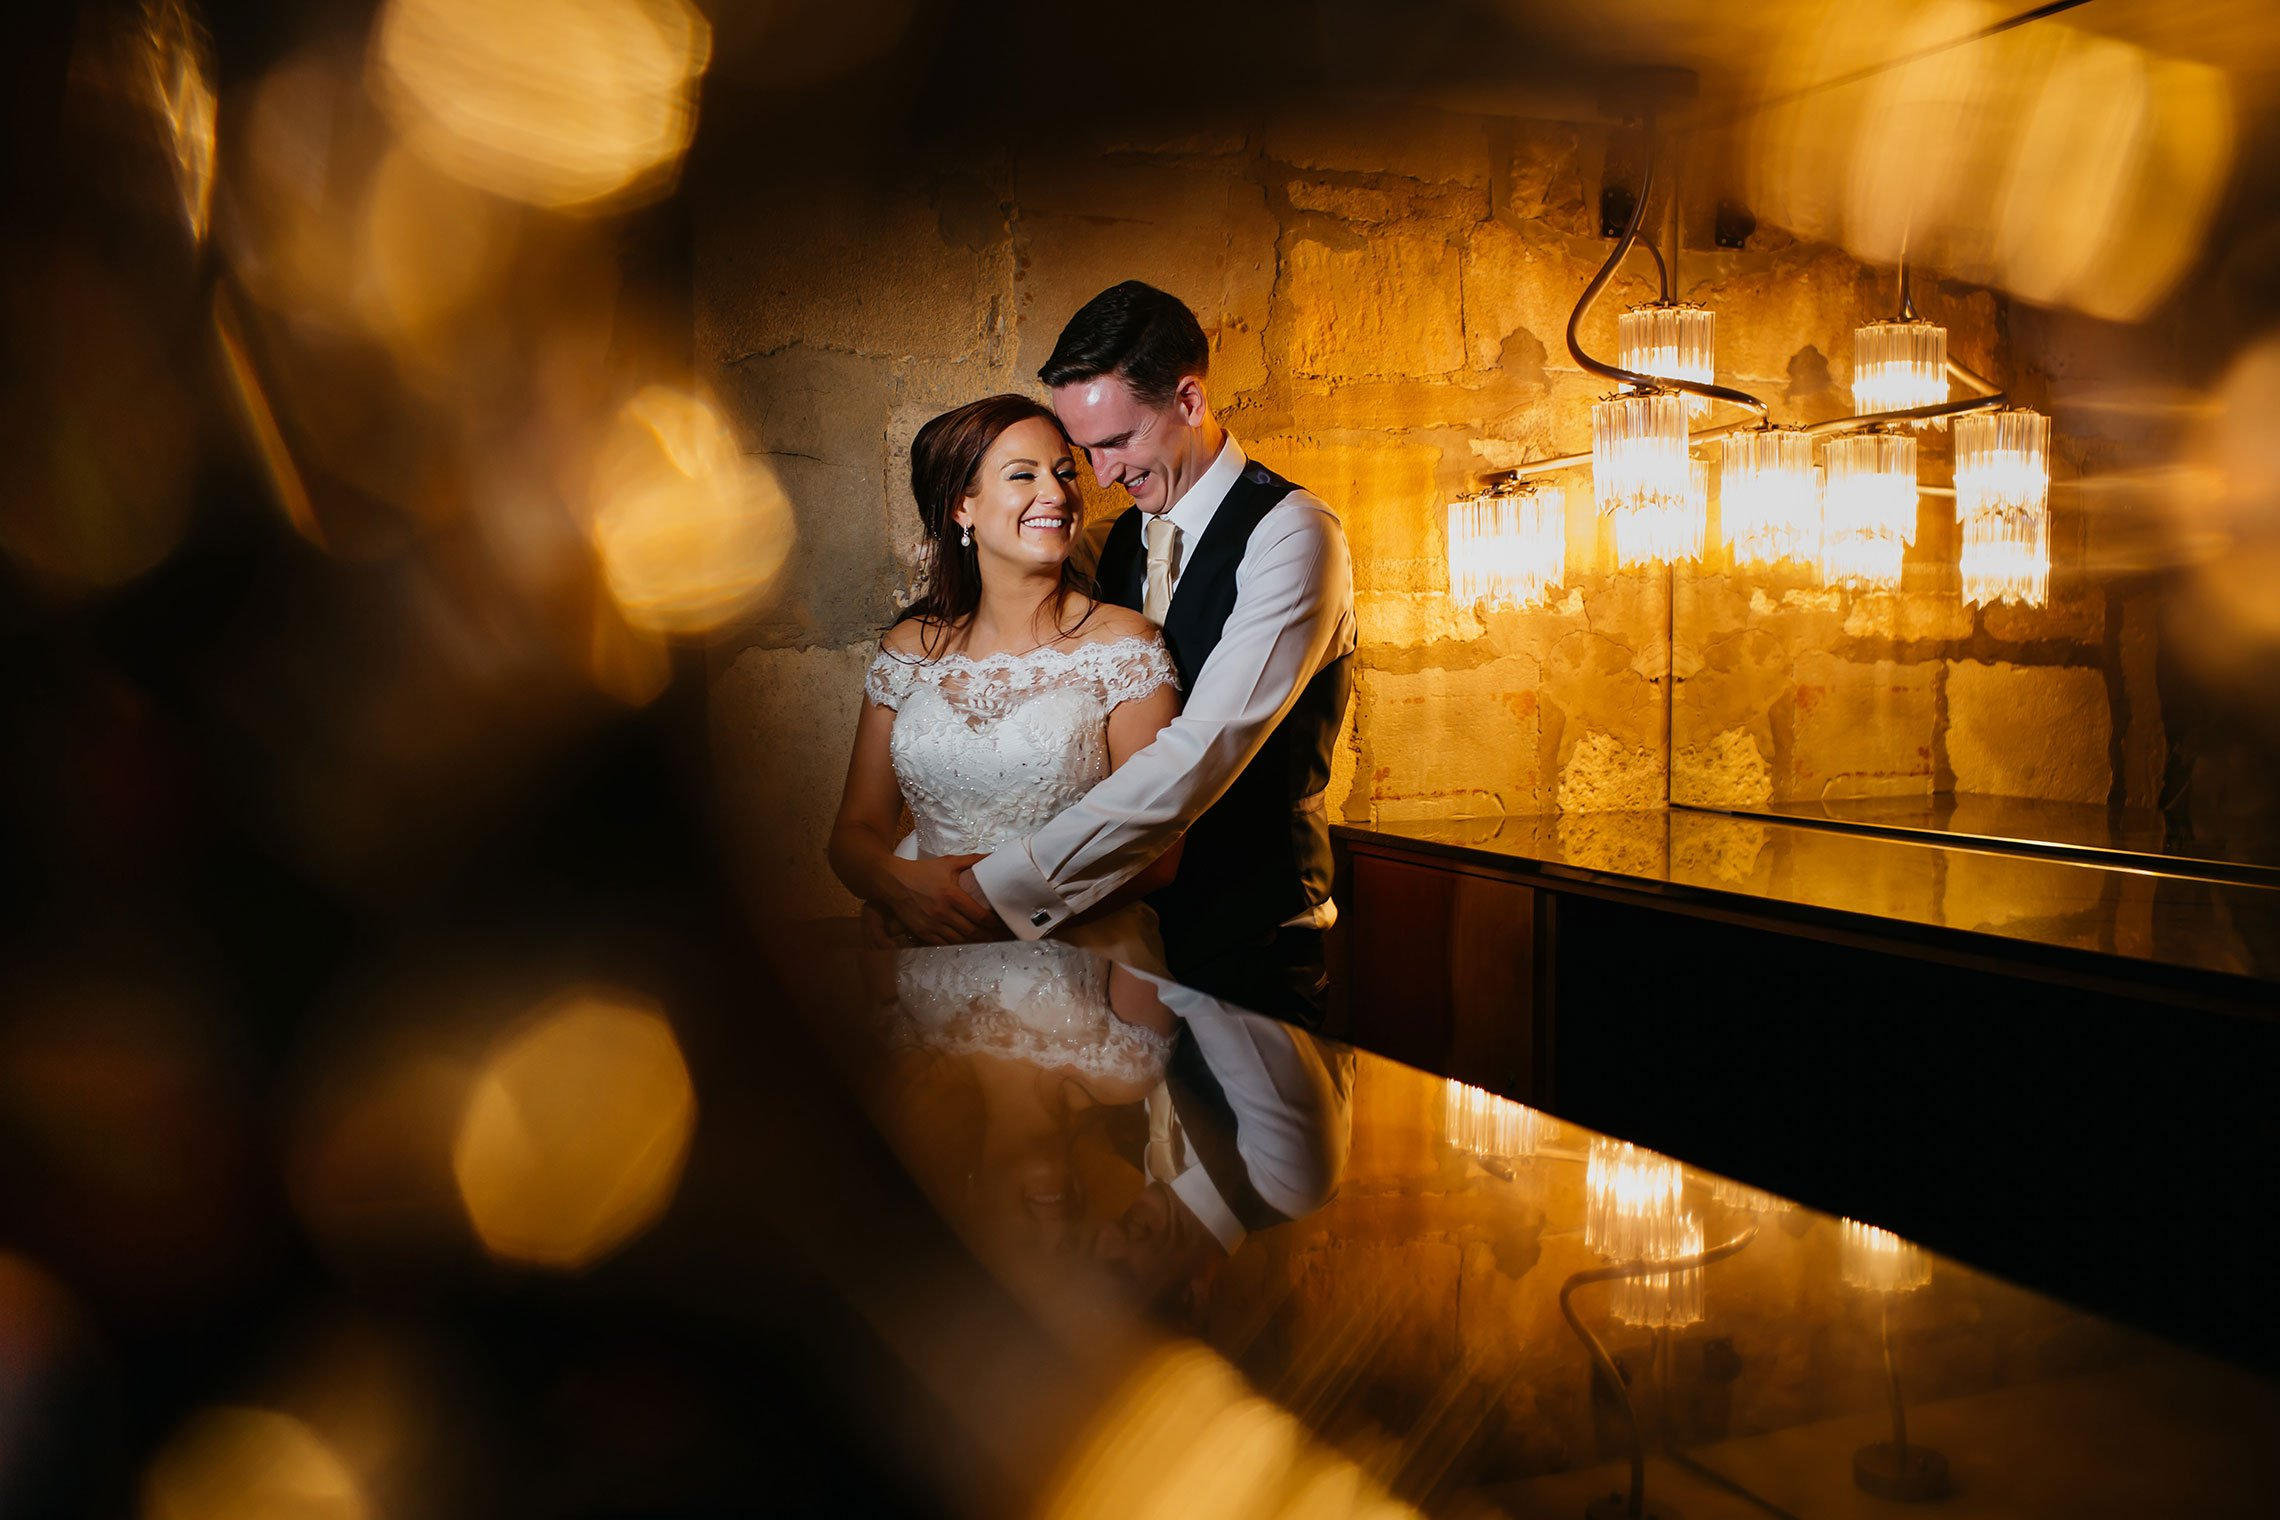 Wedding Photographer Harrogate